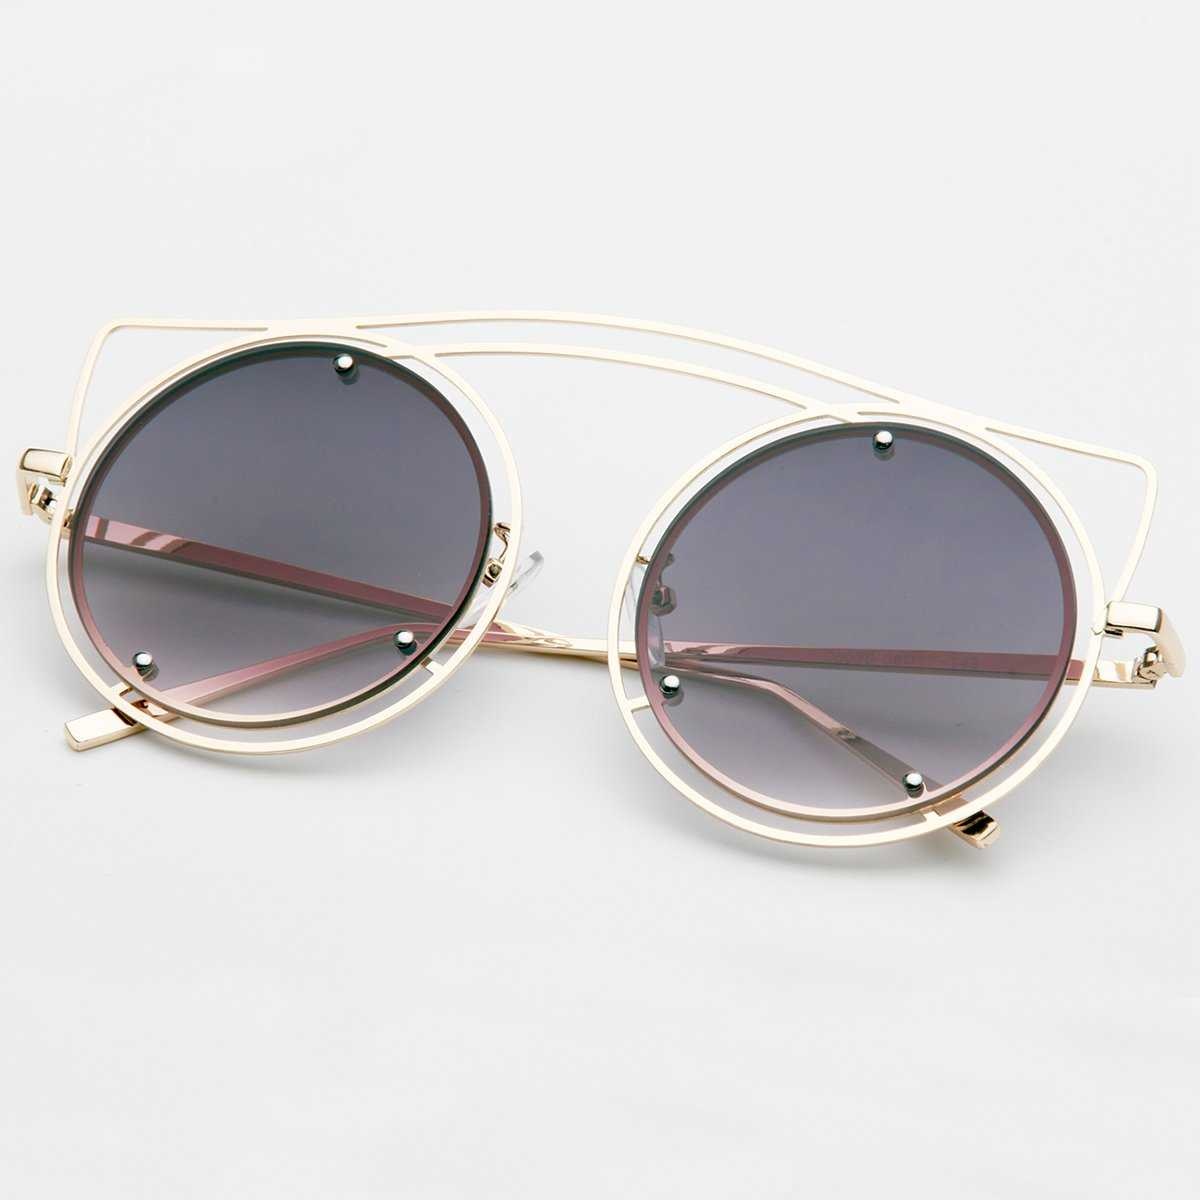 Metal Frame Round Lens Sunglasses in Grey by ROMWE on GOOFASH